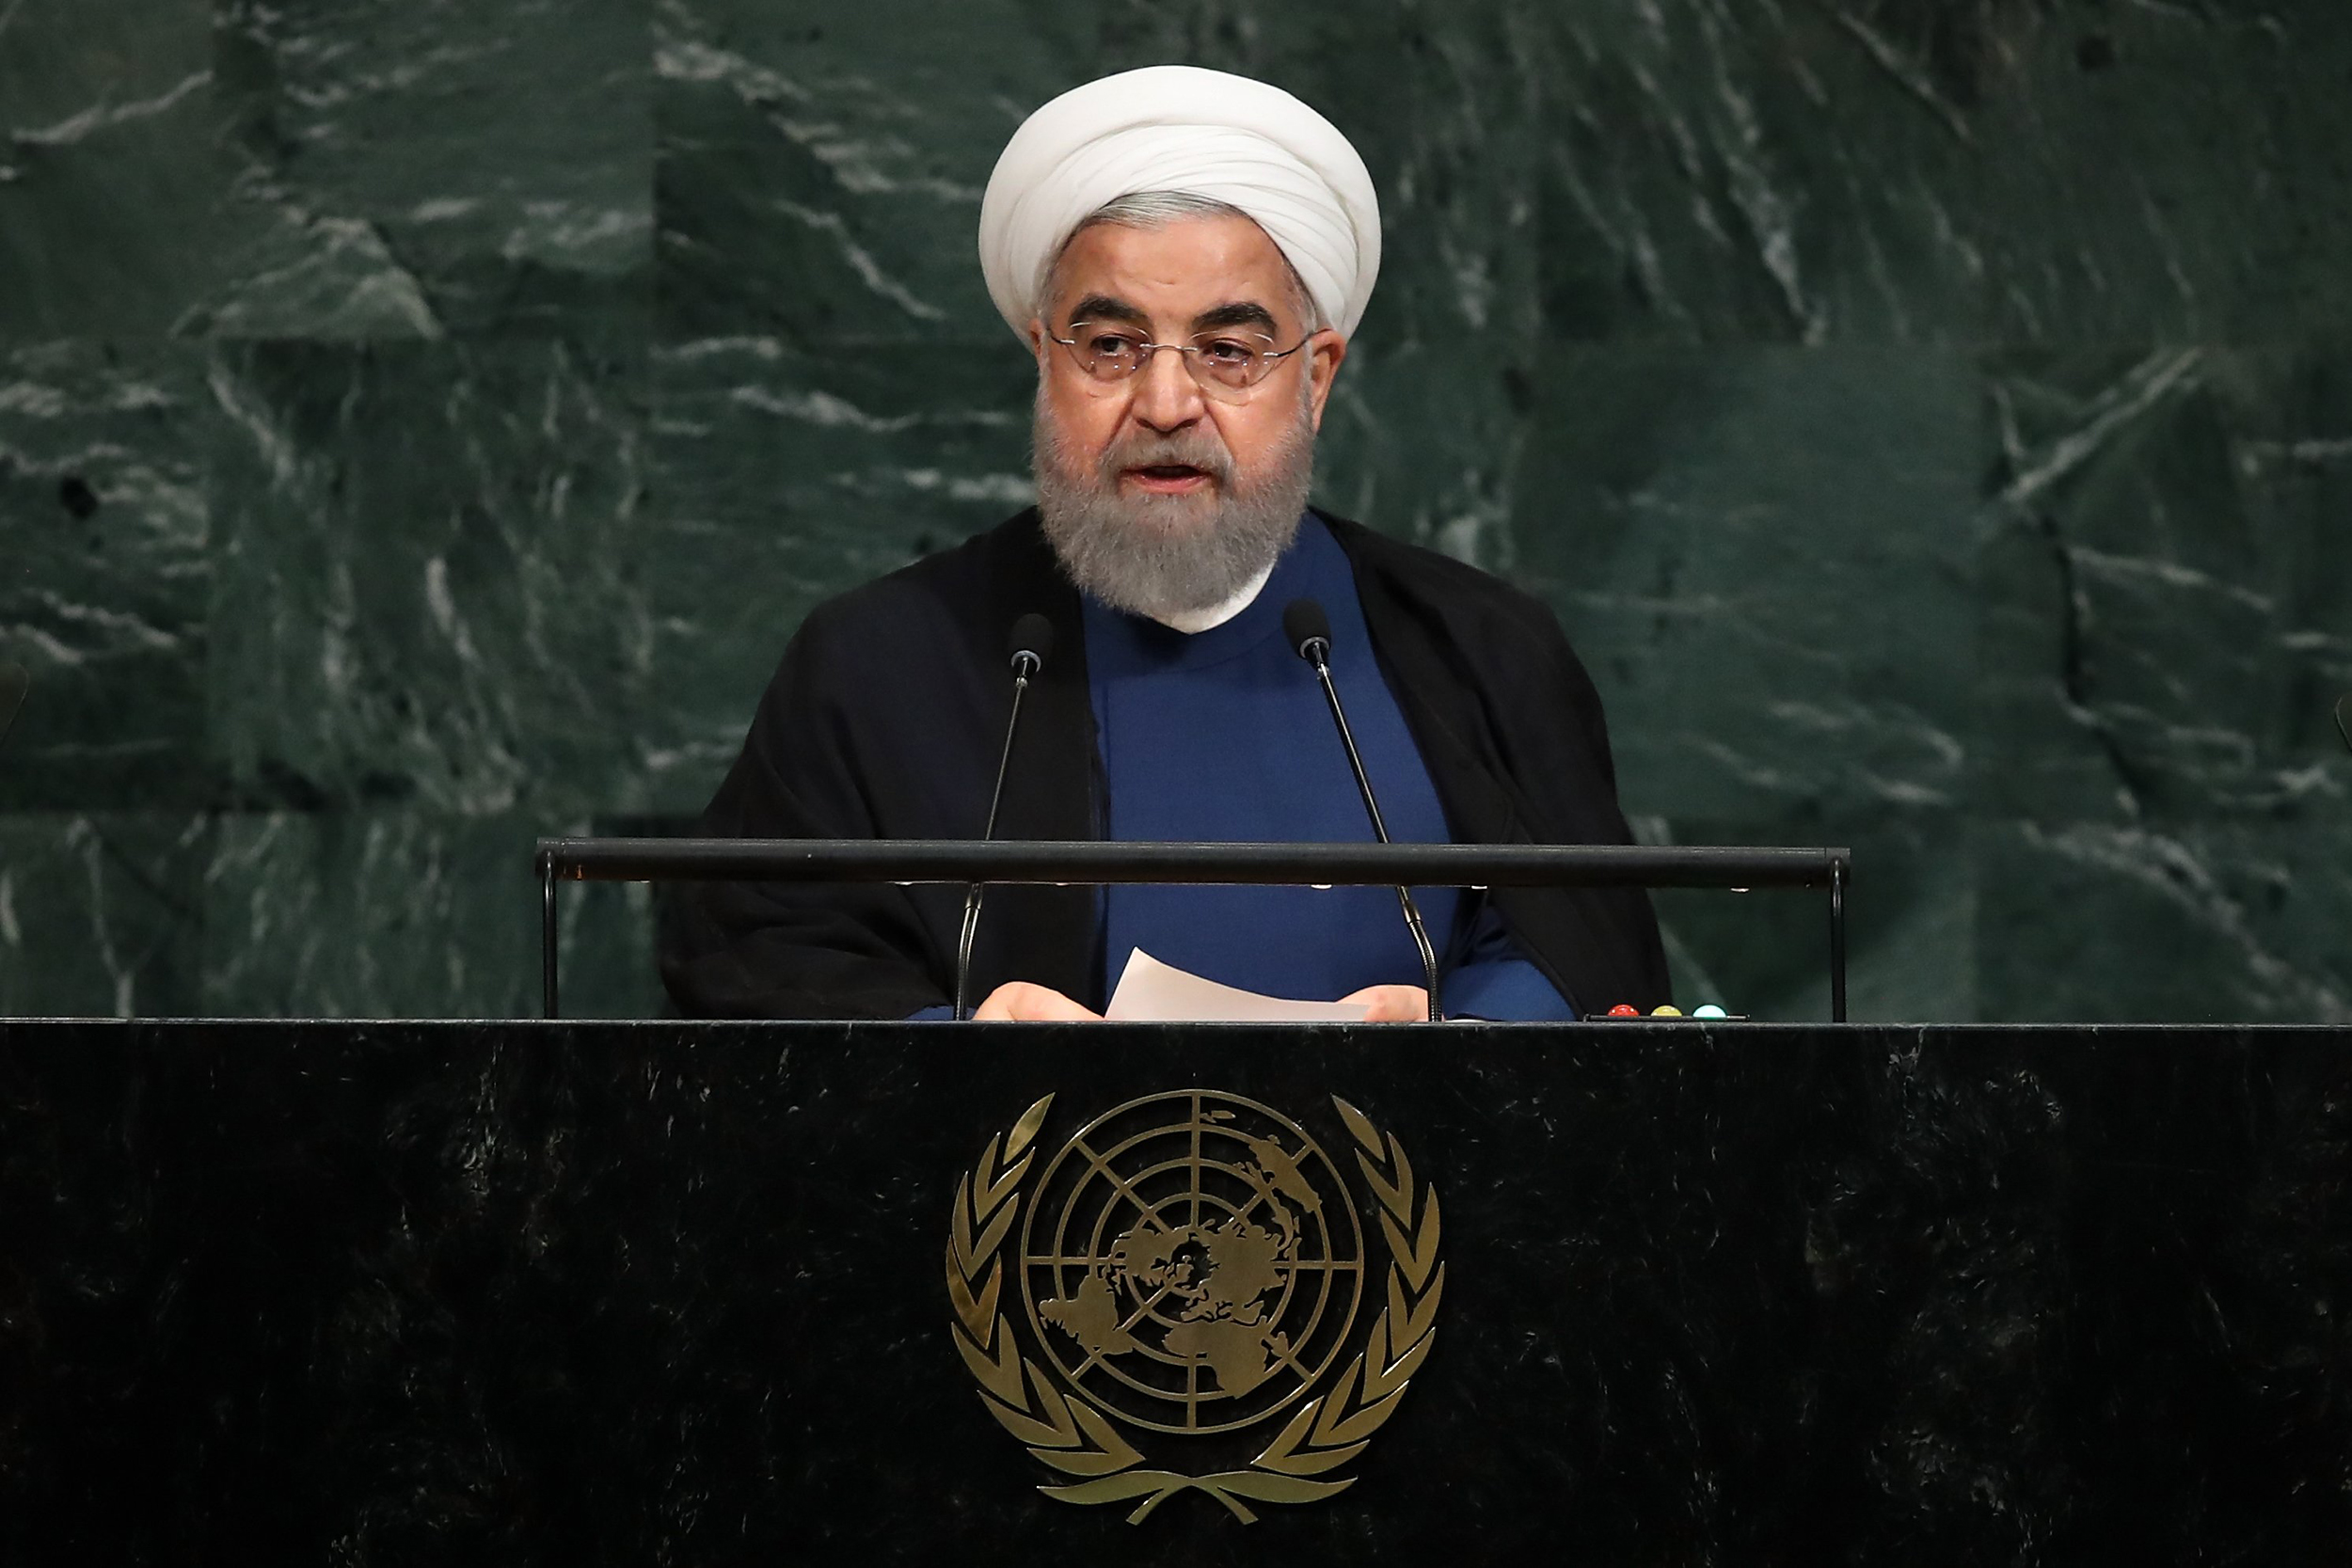 Image: Iran's President Hassan Rouhani addresses the United Nations General Assembly at U.N. headquarters